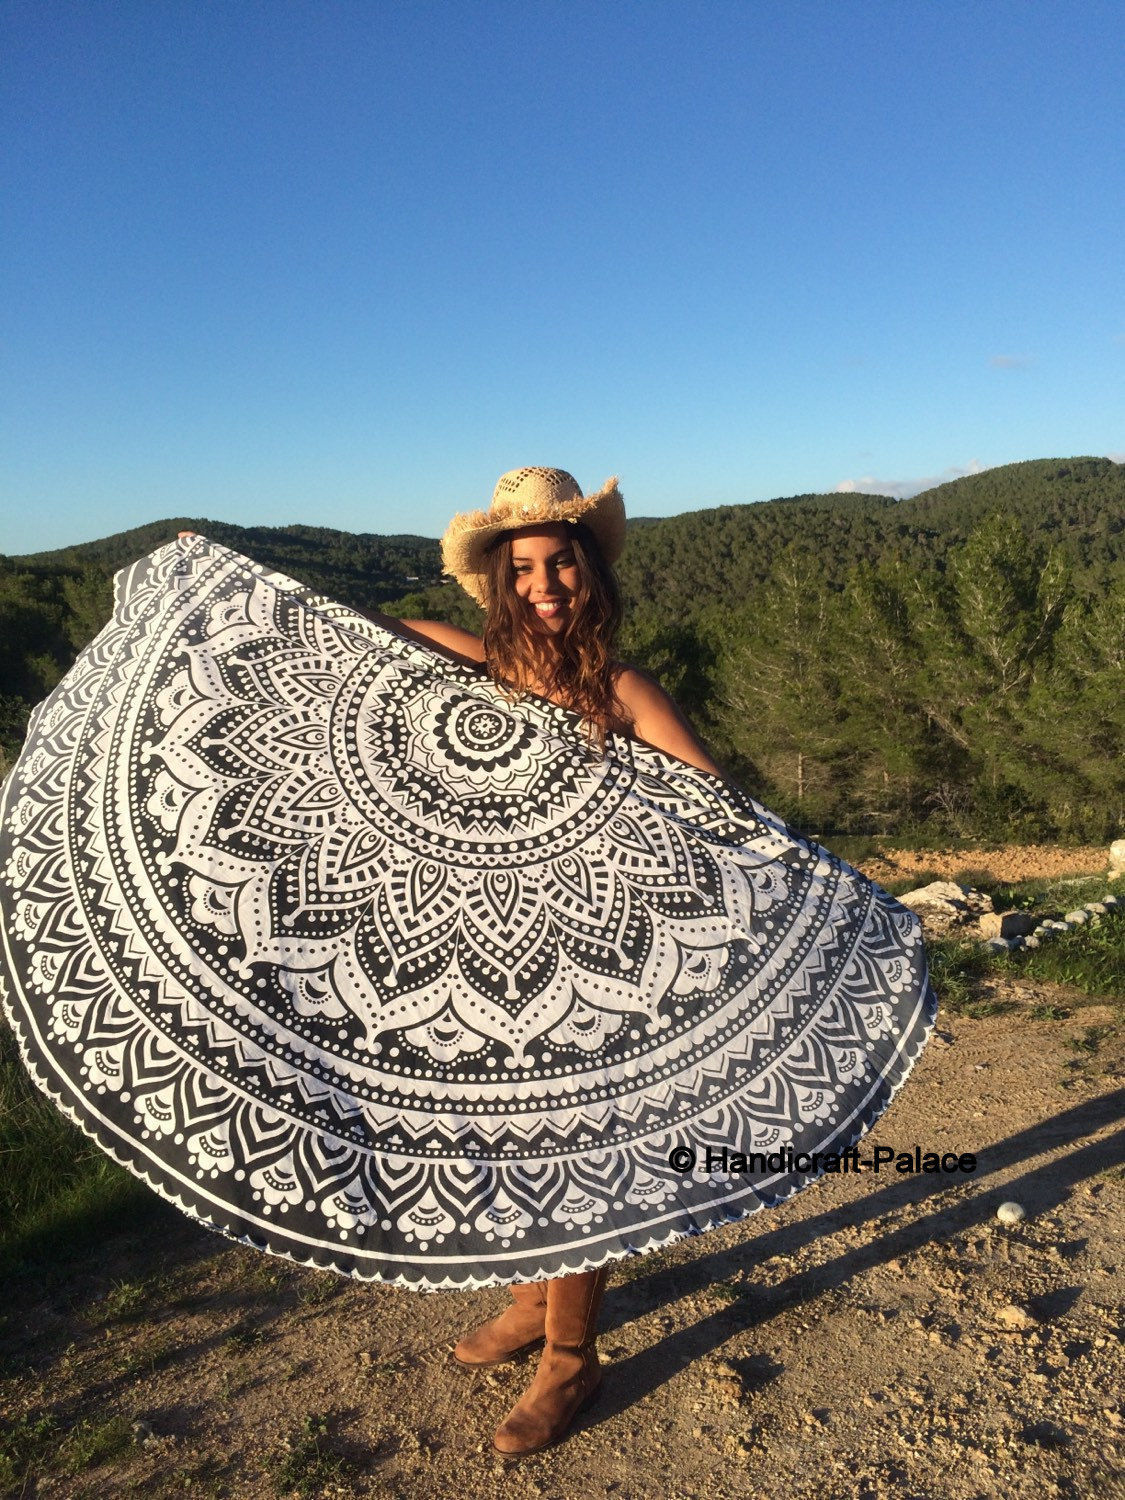 Beach Towel Shawl Winter Scarf Shawls And Scarves Poncho Feminino Inverno Round Towels Bathroom Foulard Mandala